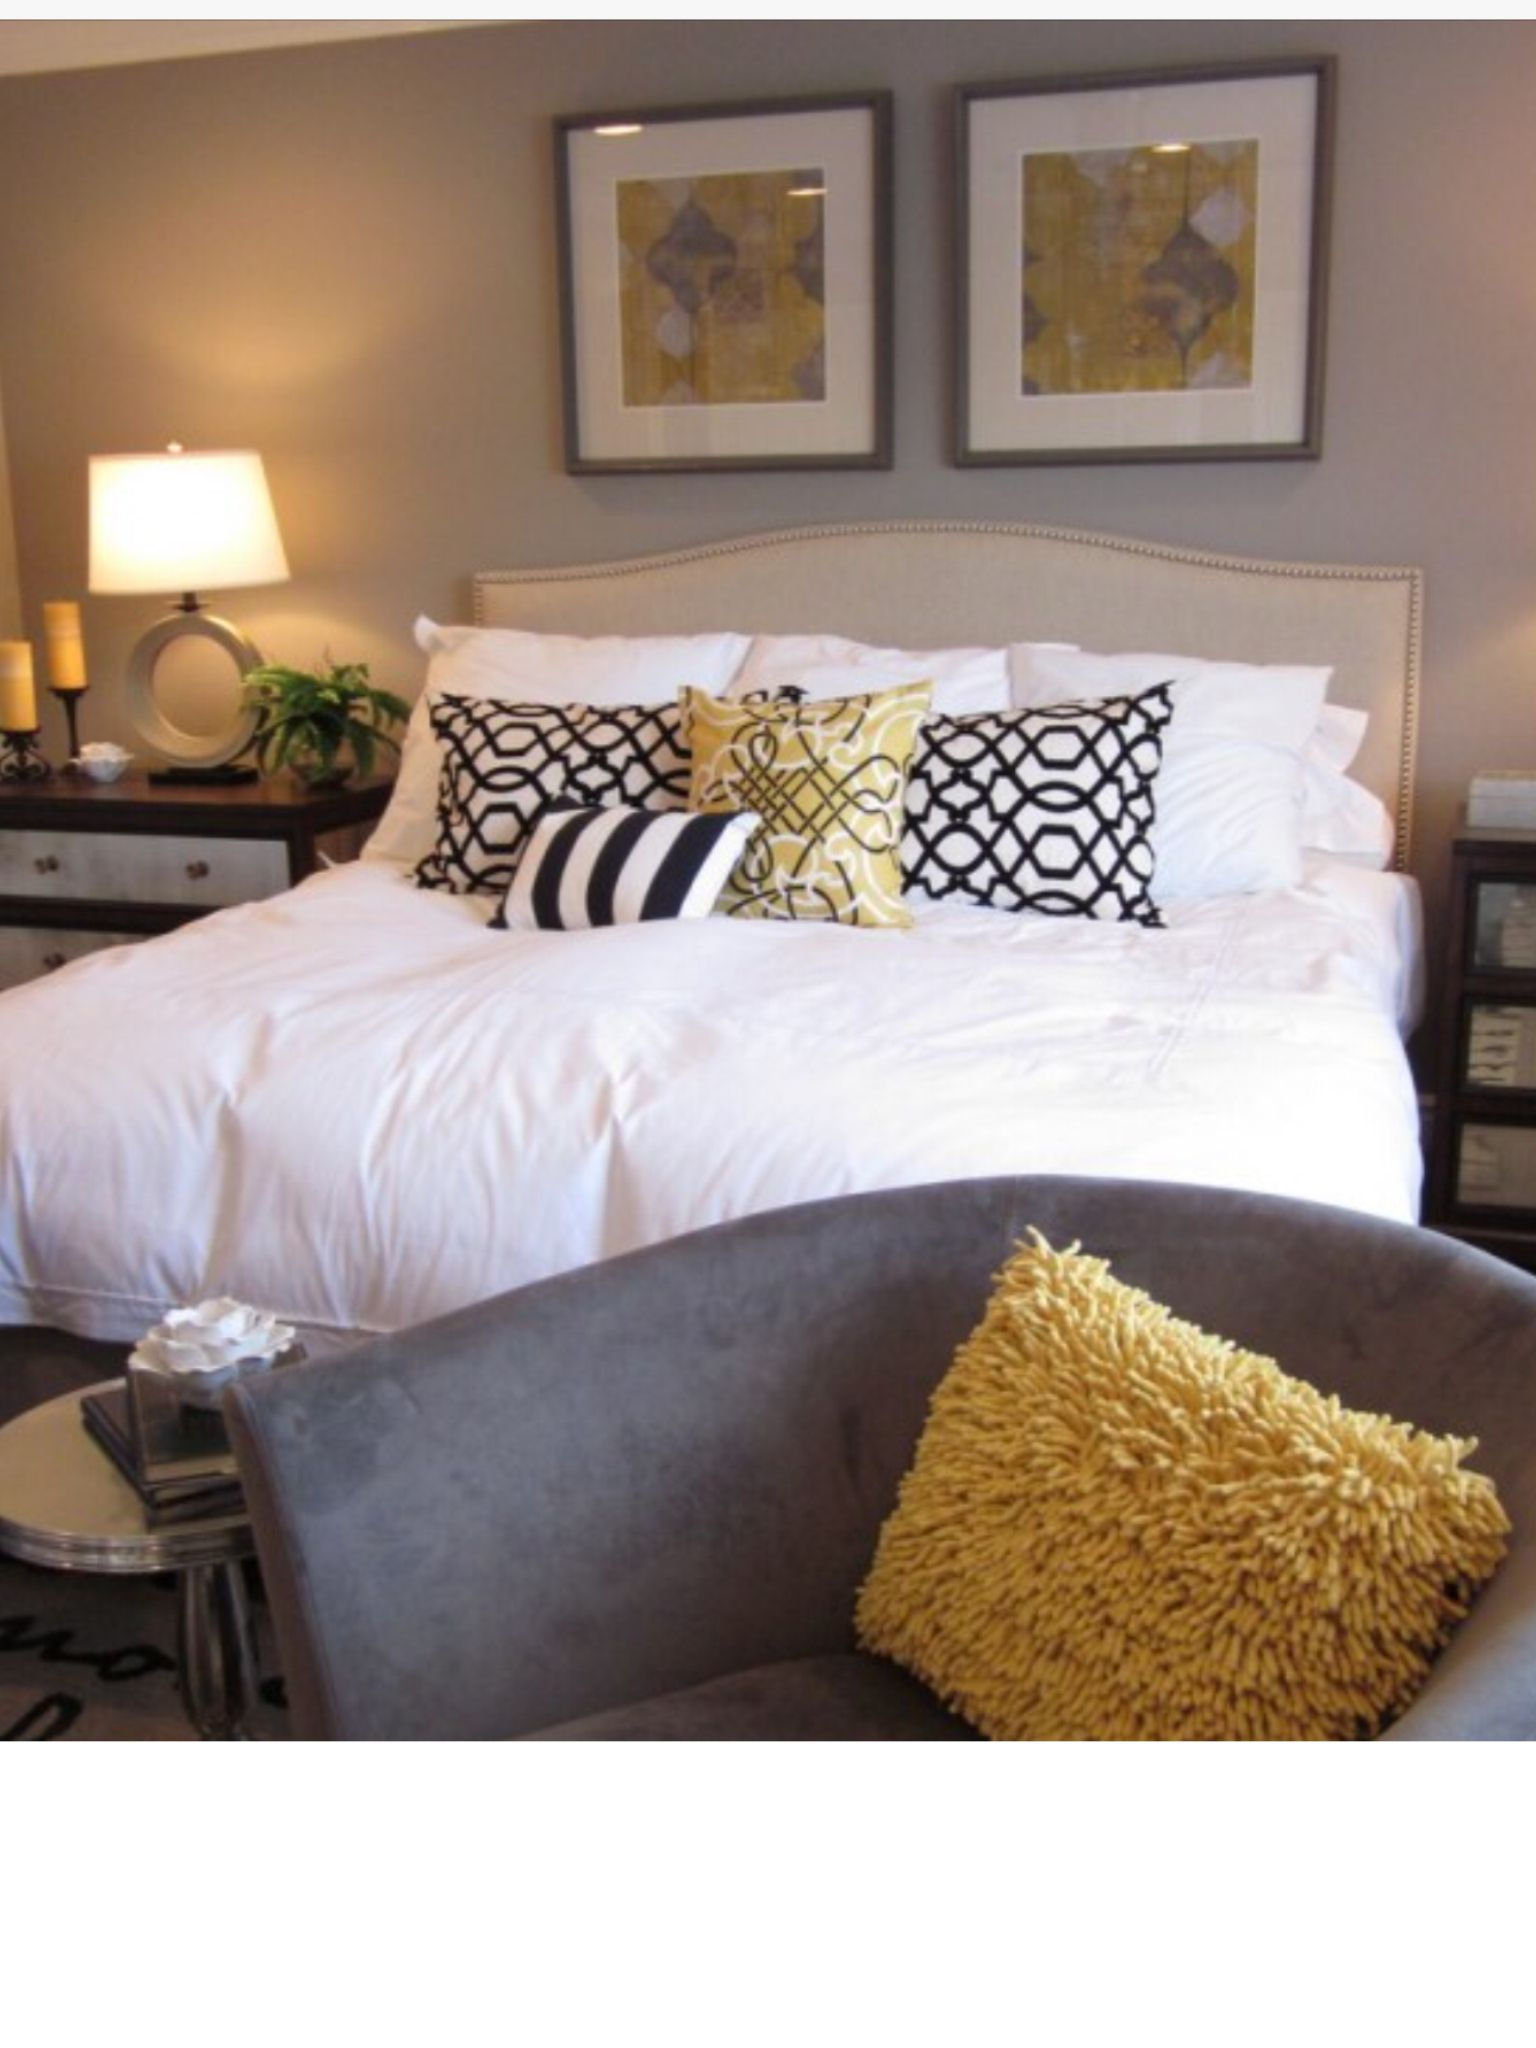 Bedroom colour scheme, black, white, mustard and beige ...